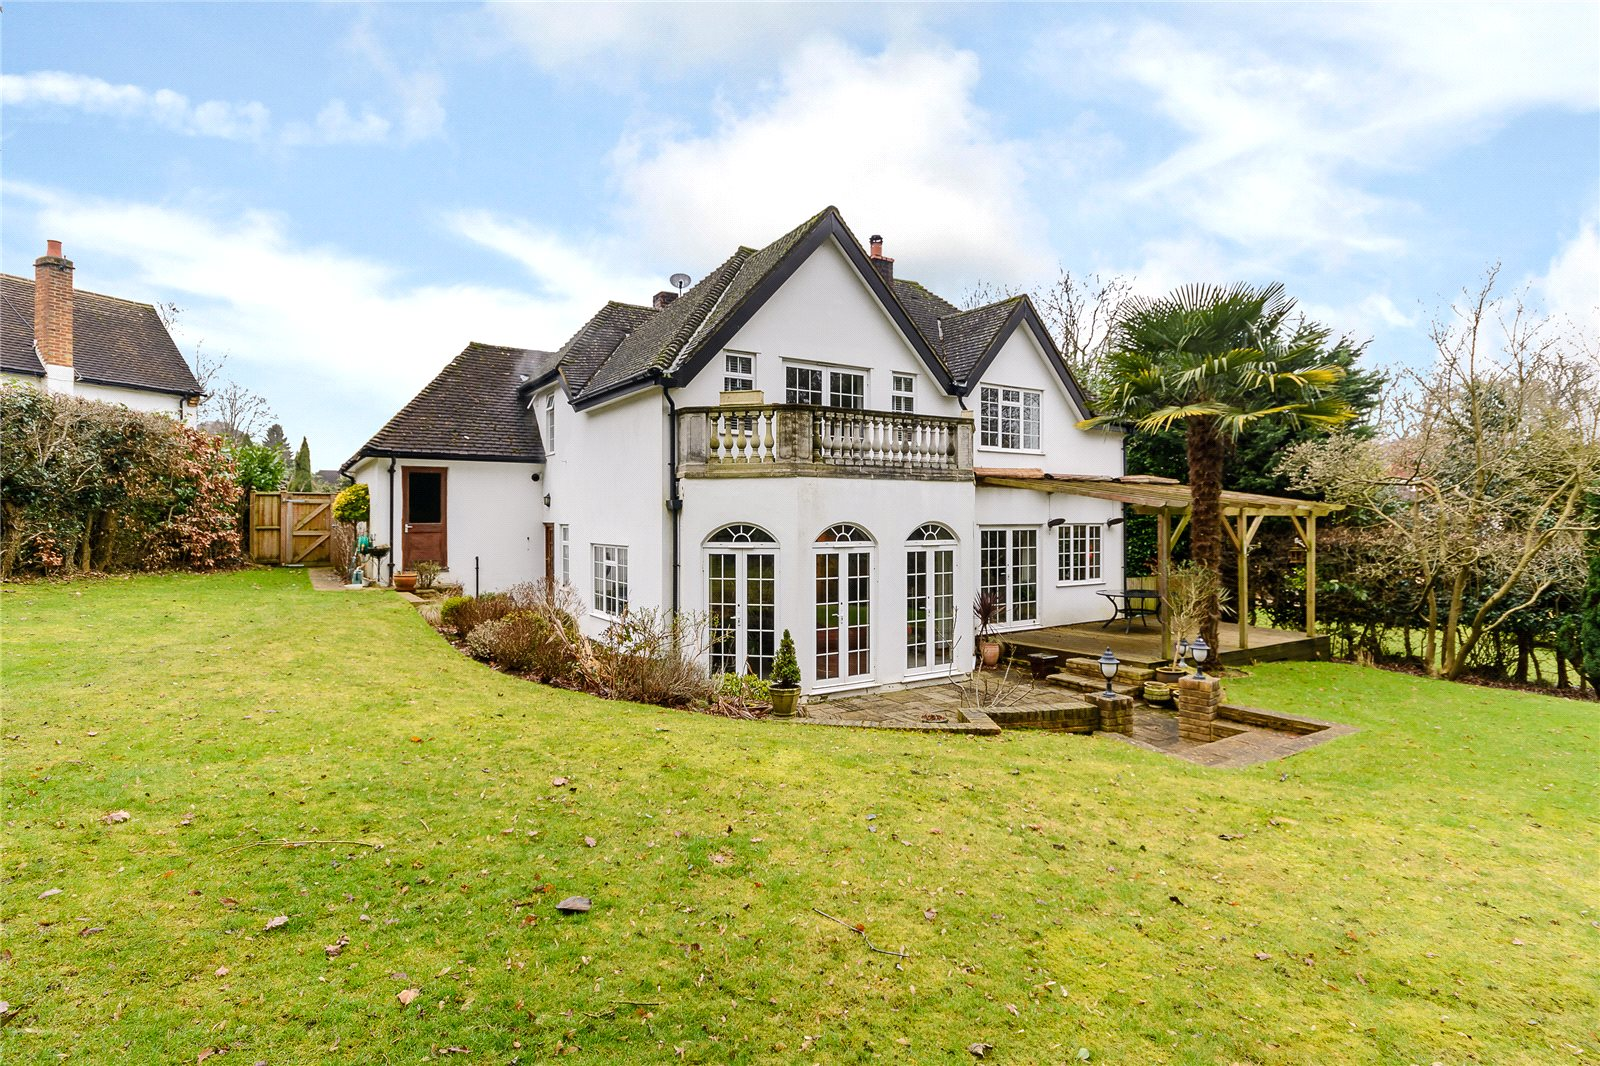 Additional photo for property listing at Howards Wood Drive, Gerrards Cross, Buckinghamshire, SL9 Gerrards Cross, 英格兰